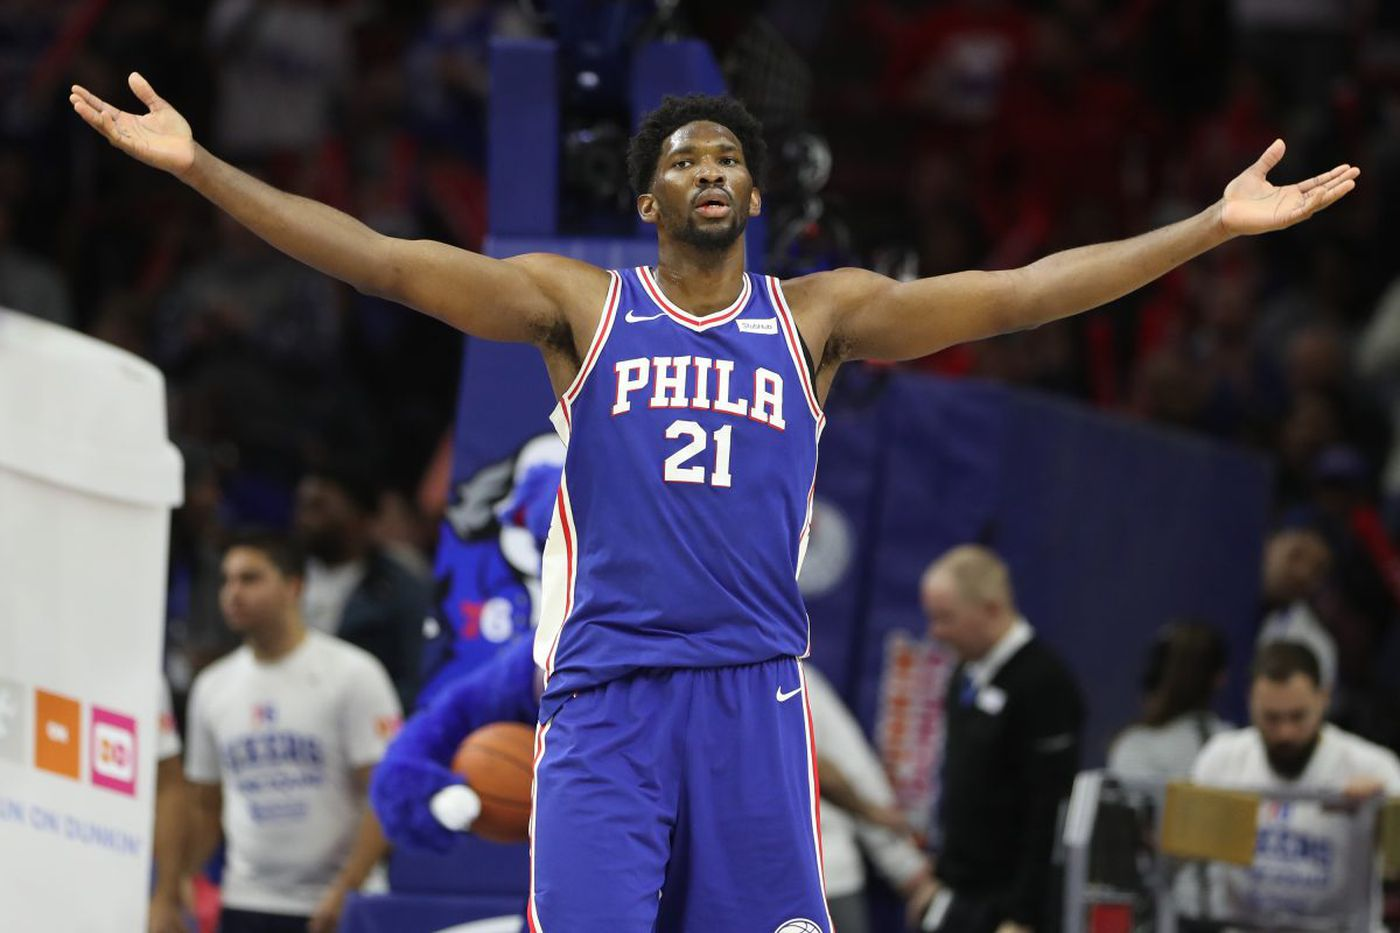 Sixers chat replay: Keith Pompey talks Ben Simmons, Brett Brown and more